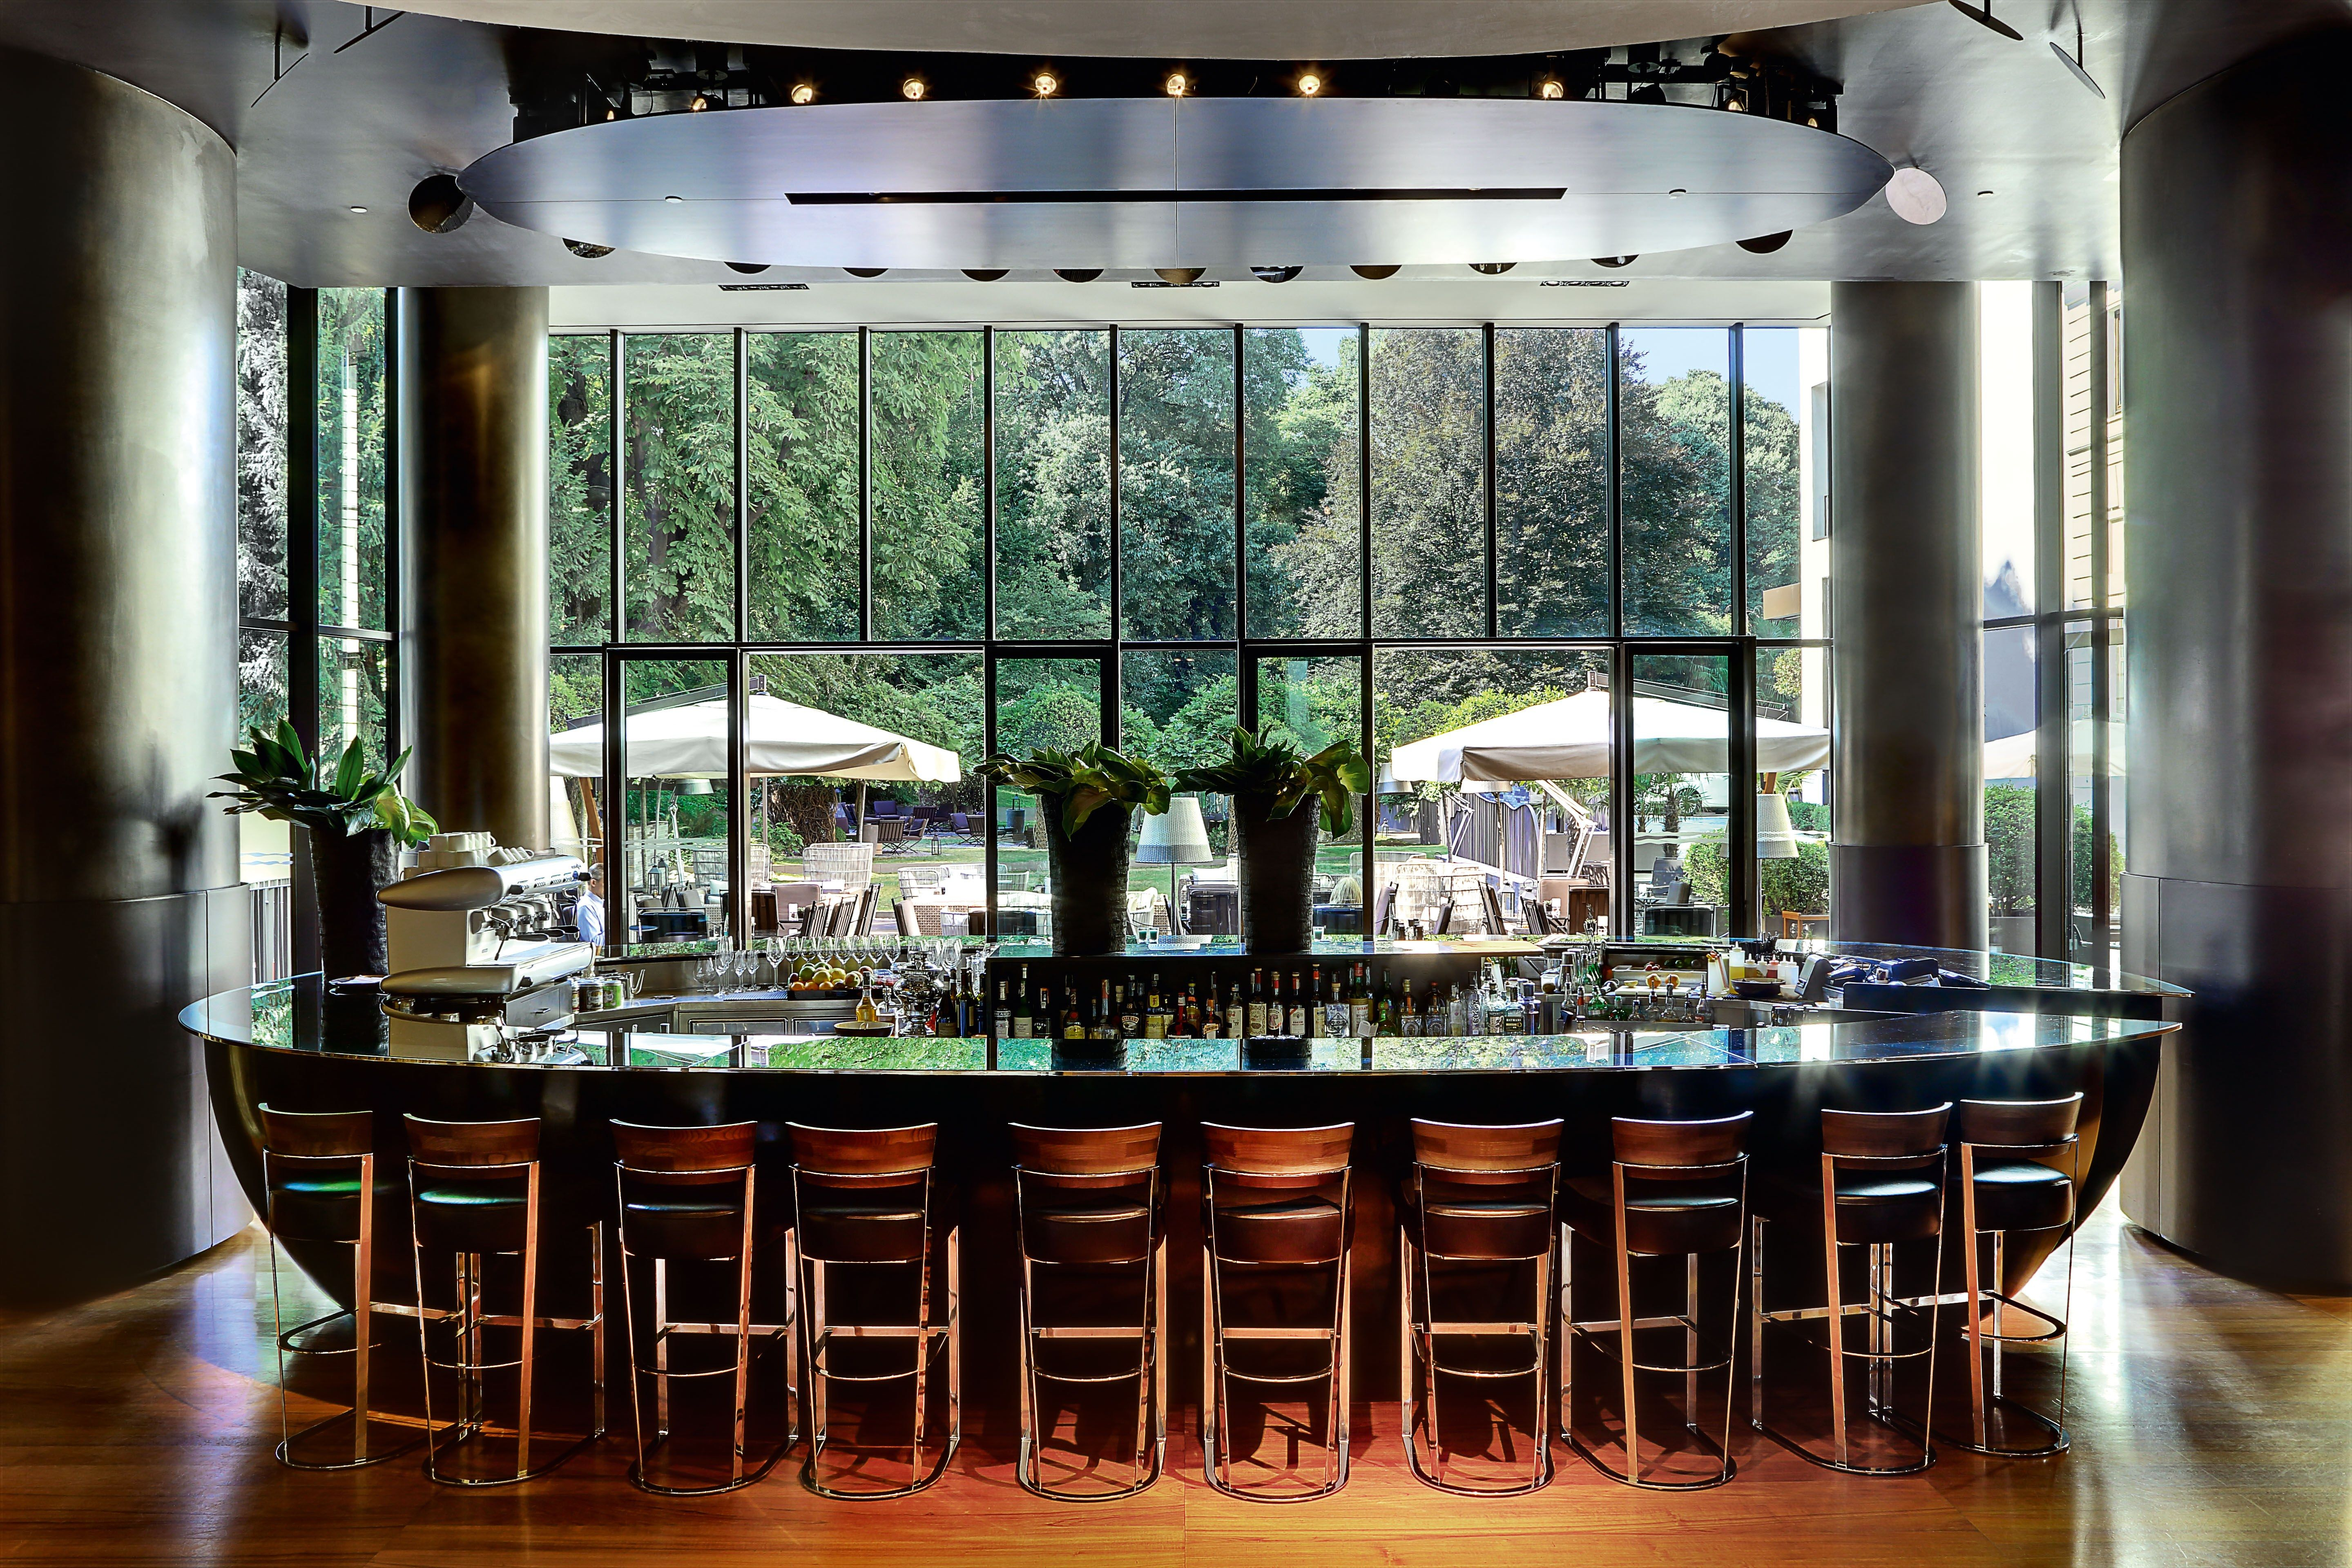 6 Chic Bars In Milan - Architectural Digest